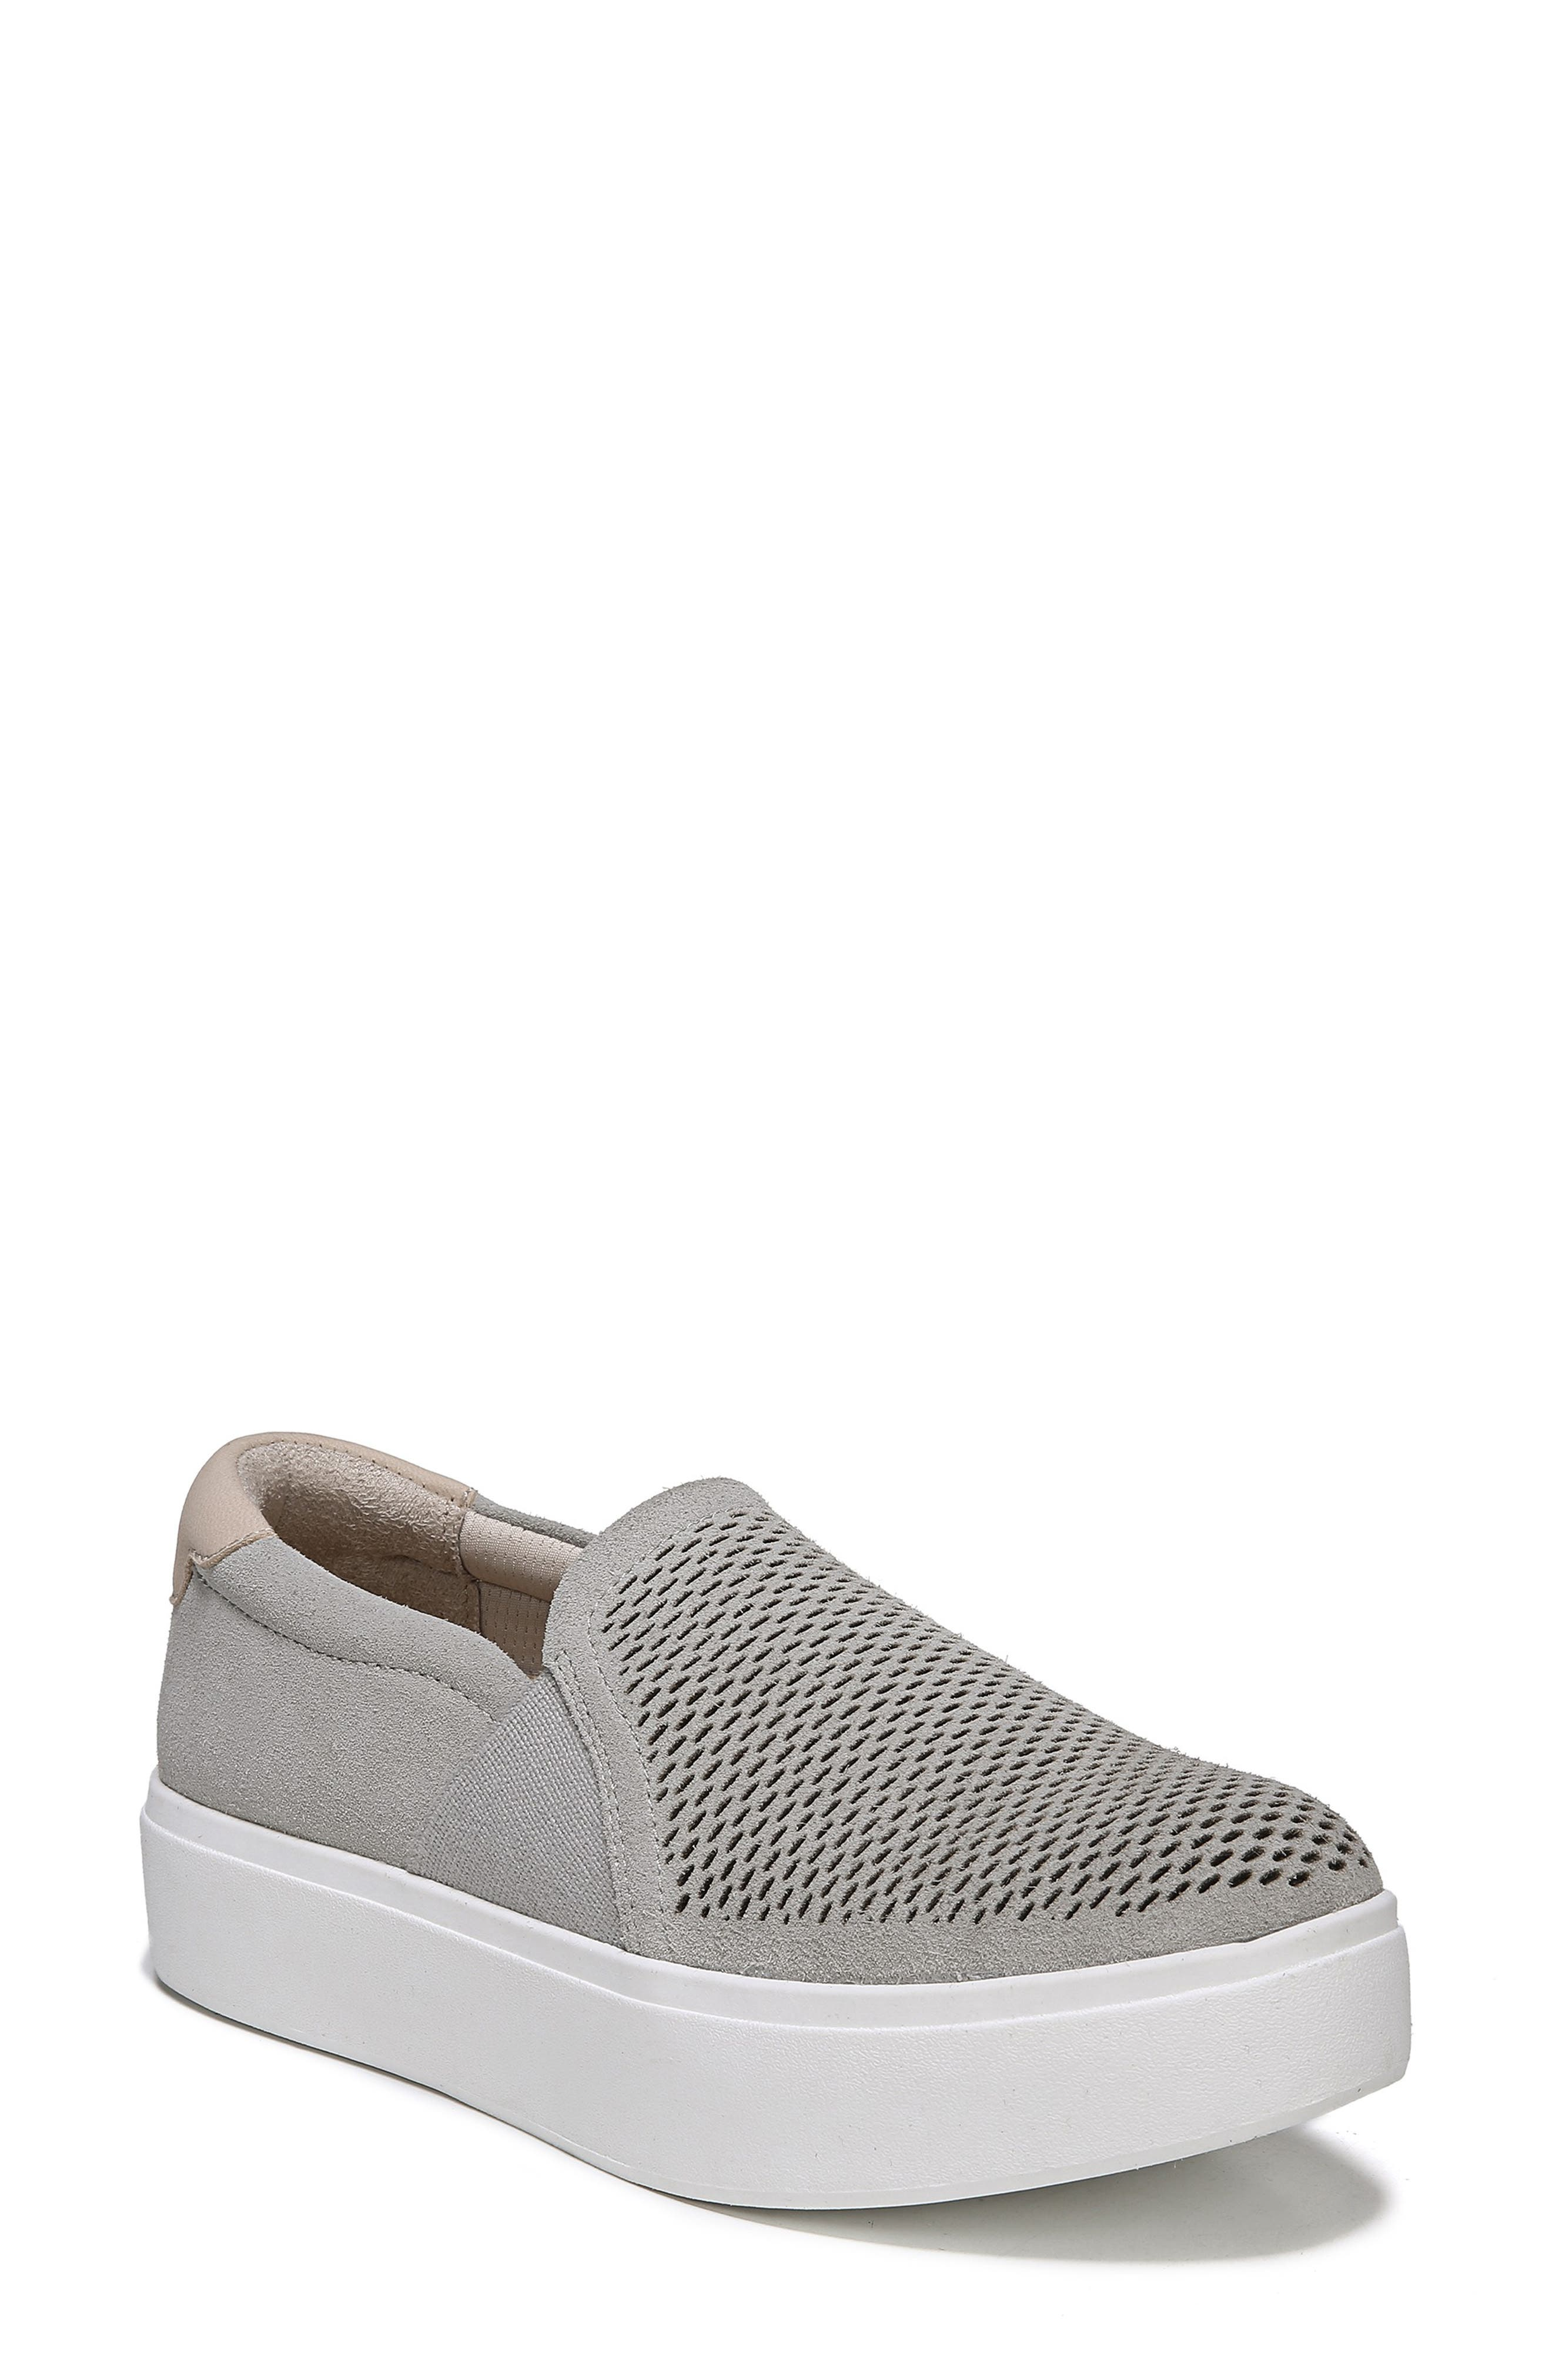 Abbot Lux Sneaker,                         Main,                         color, GREY LEATHER